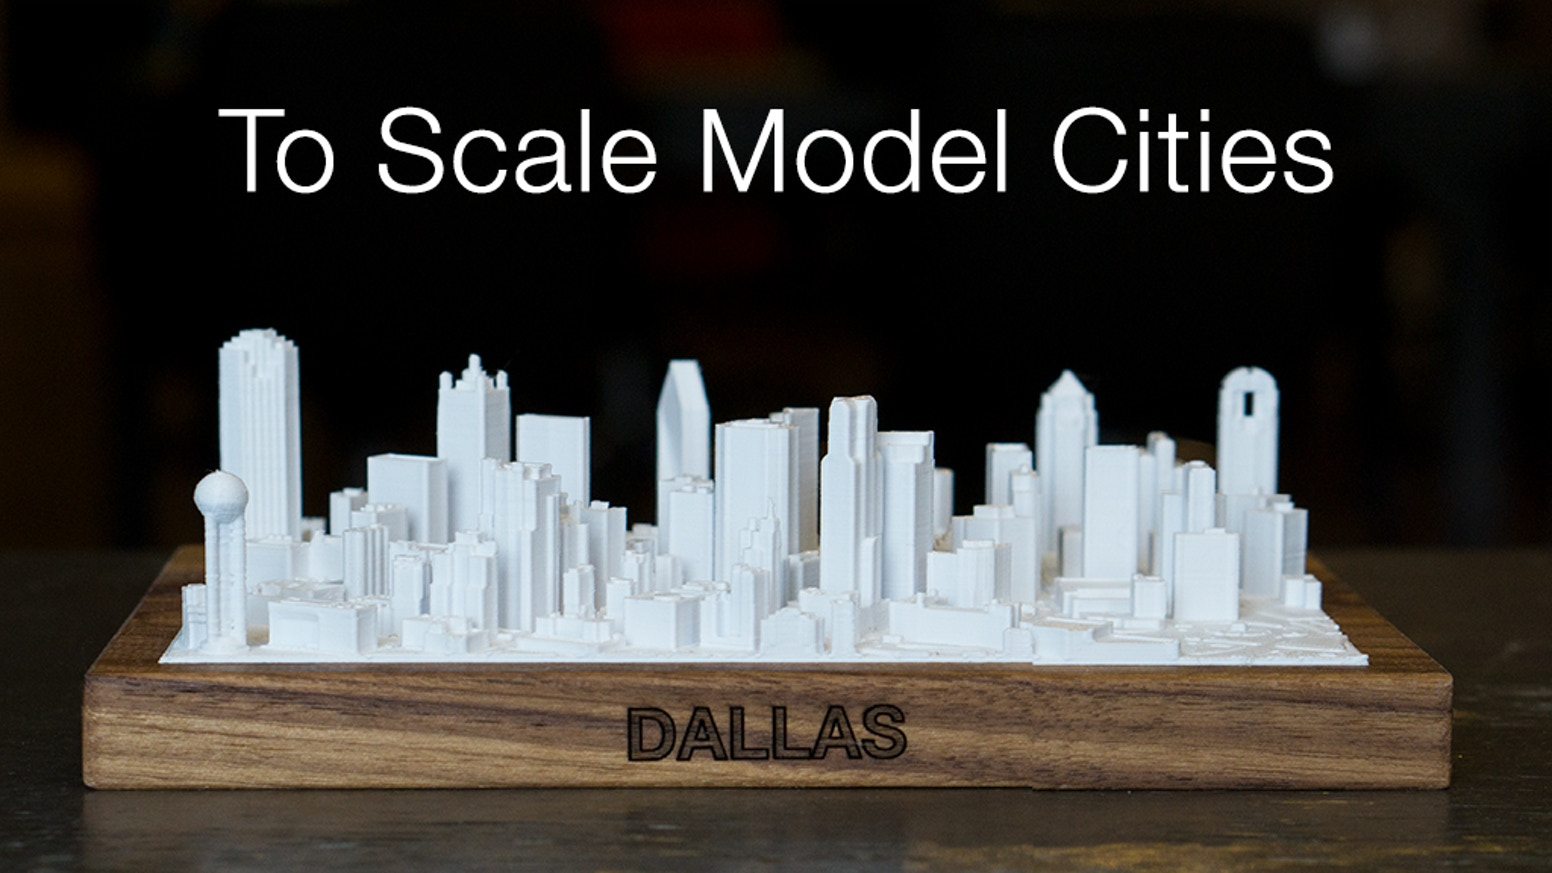 3D Printed Skylines | To Scale Model Cities by 3DPS